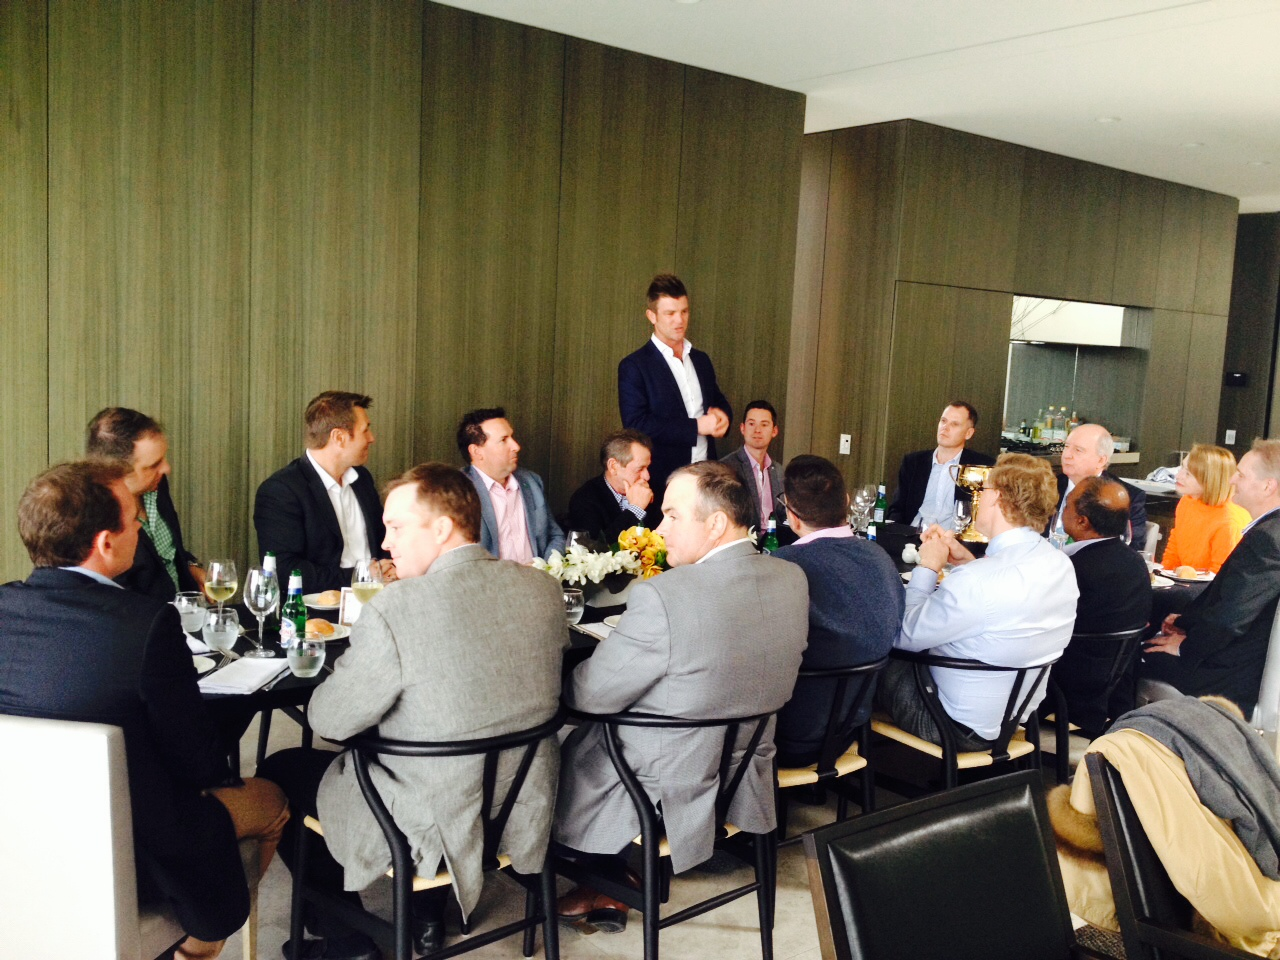 Blue Sky Bloodstock's Julian Blaxland addressing the guest at the recent Spring Lunch.